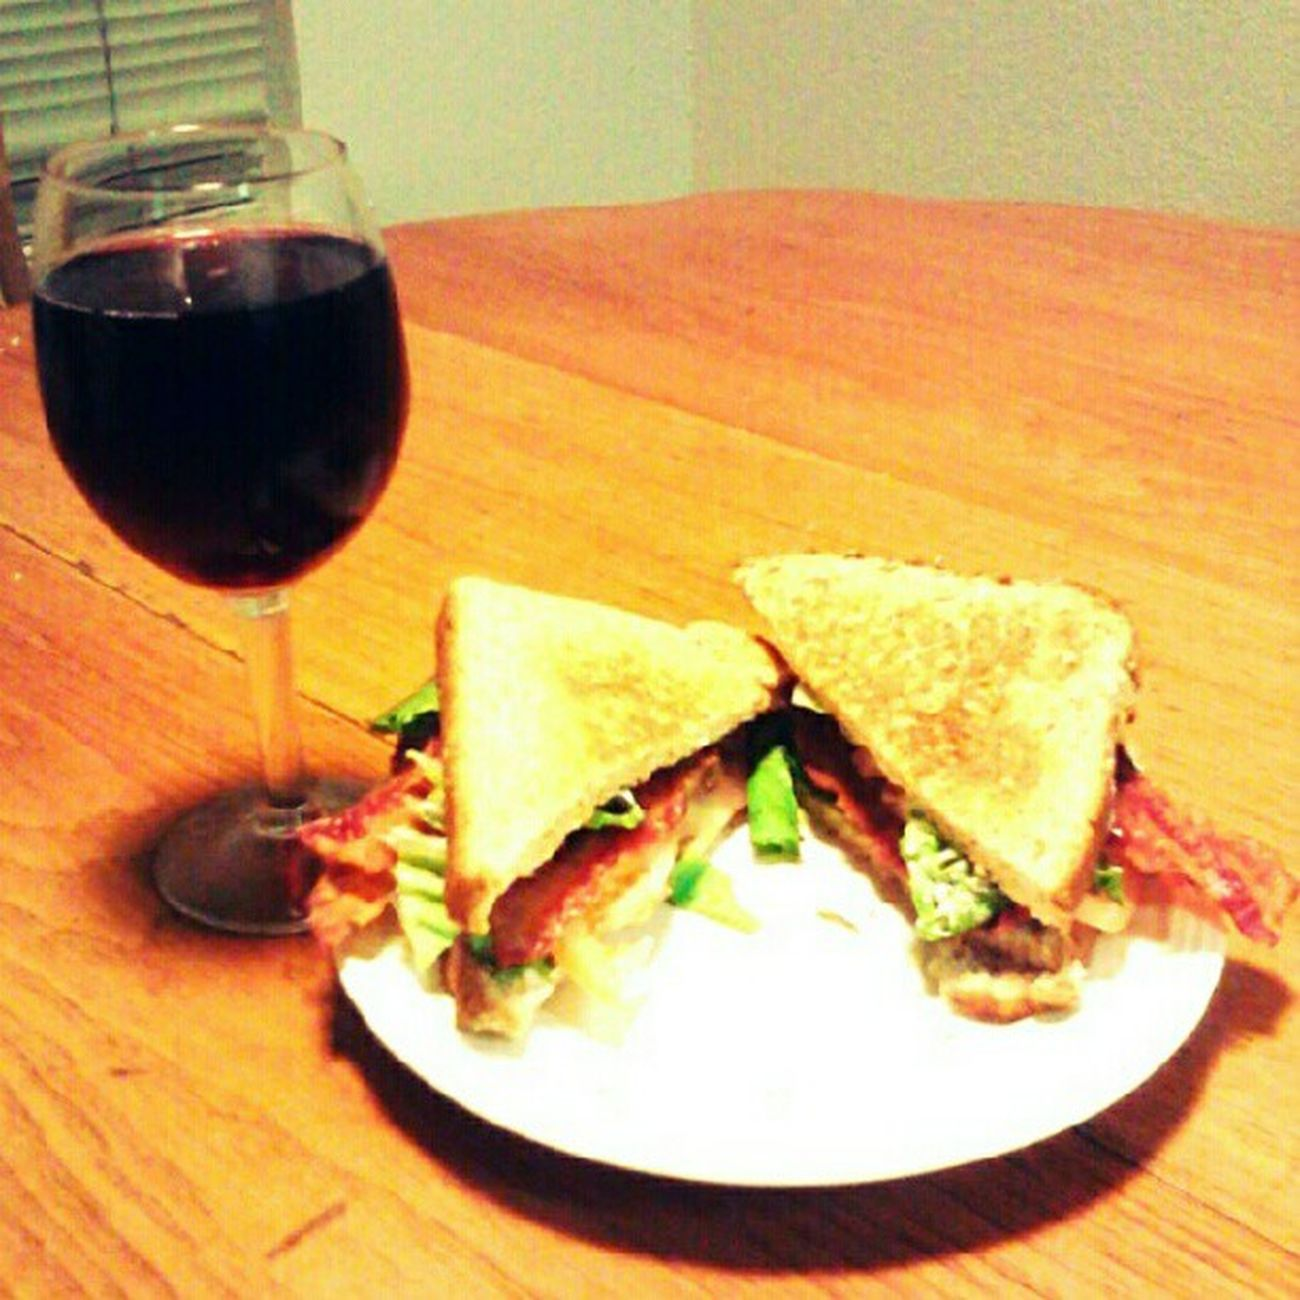 #blt and a glass of #wine for dinner. #foodie #food #winesnob #simple Dinner Food Wine Foodie Simple BLT Winesnob Nylonsnack